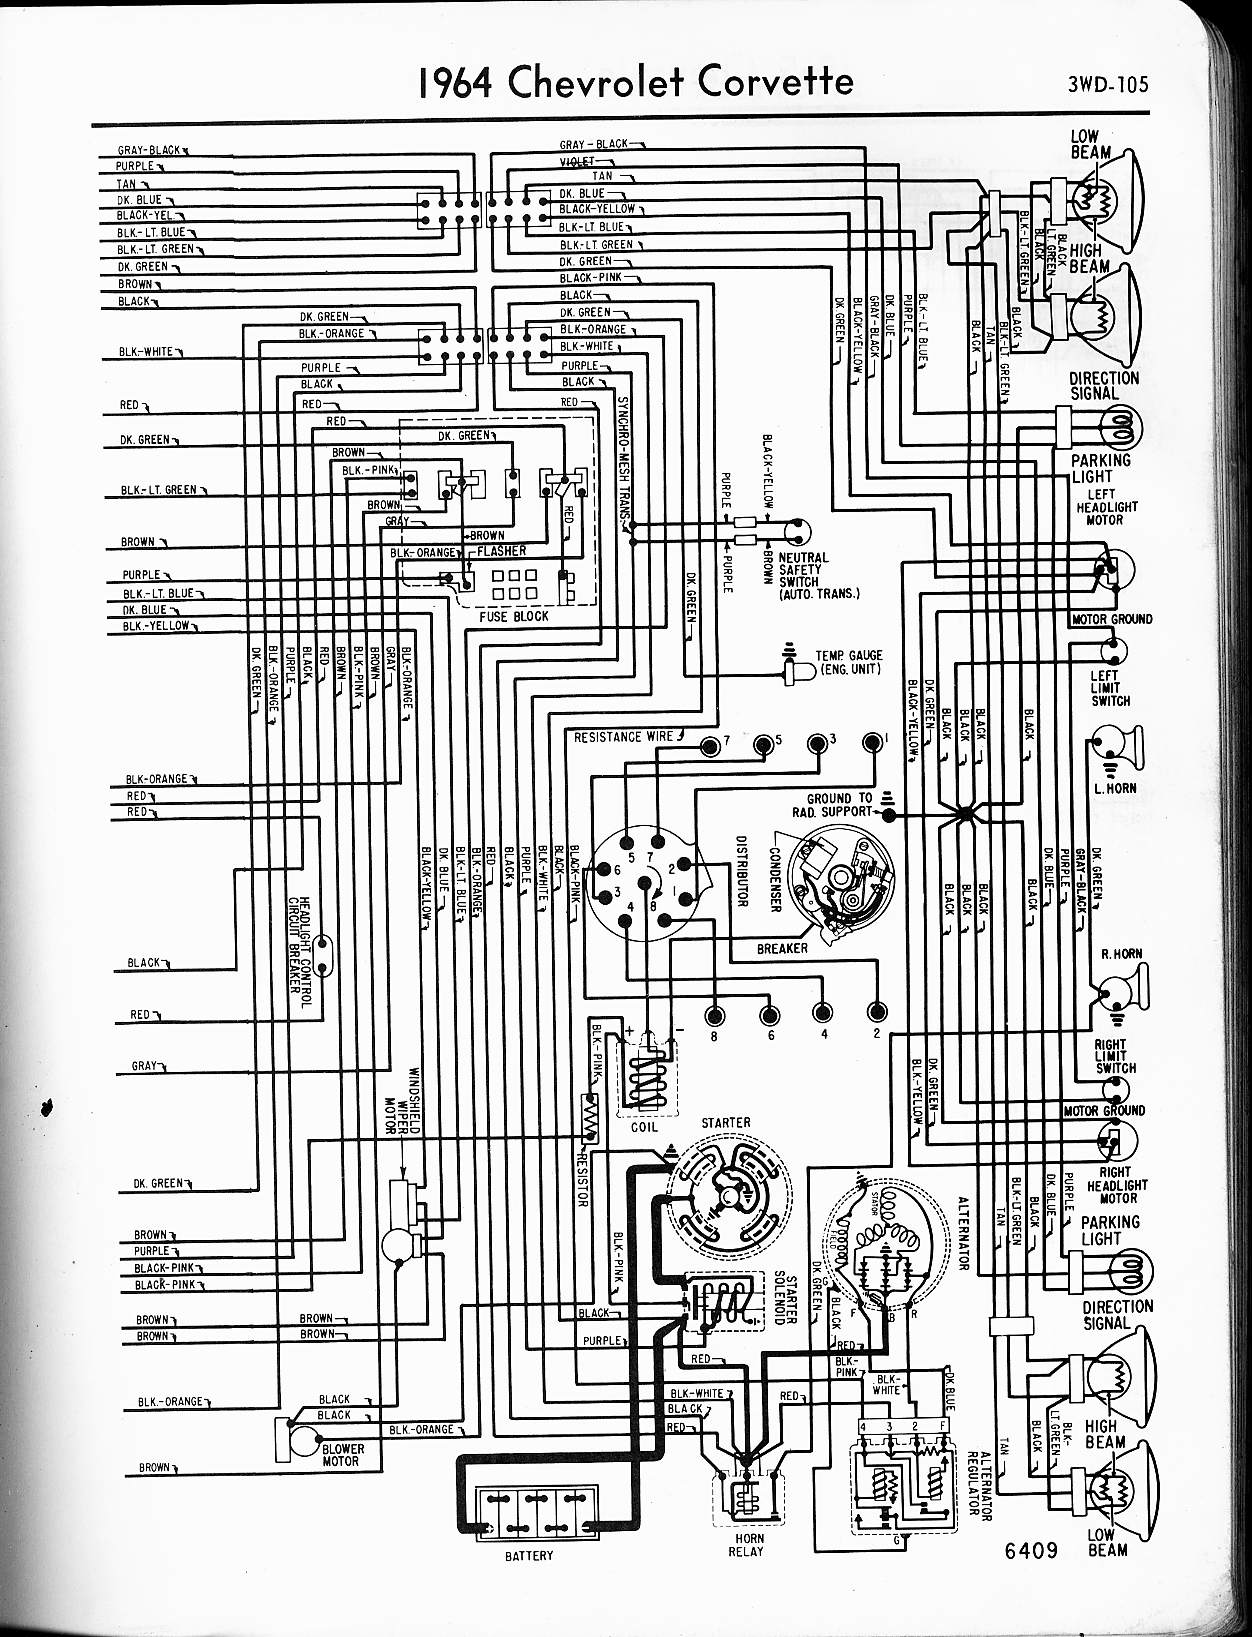 57 65 chevy wiring diagrams 04 chevy impala fuse diagram 04 chevy impala  fuse diagram